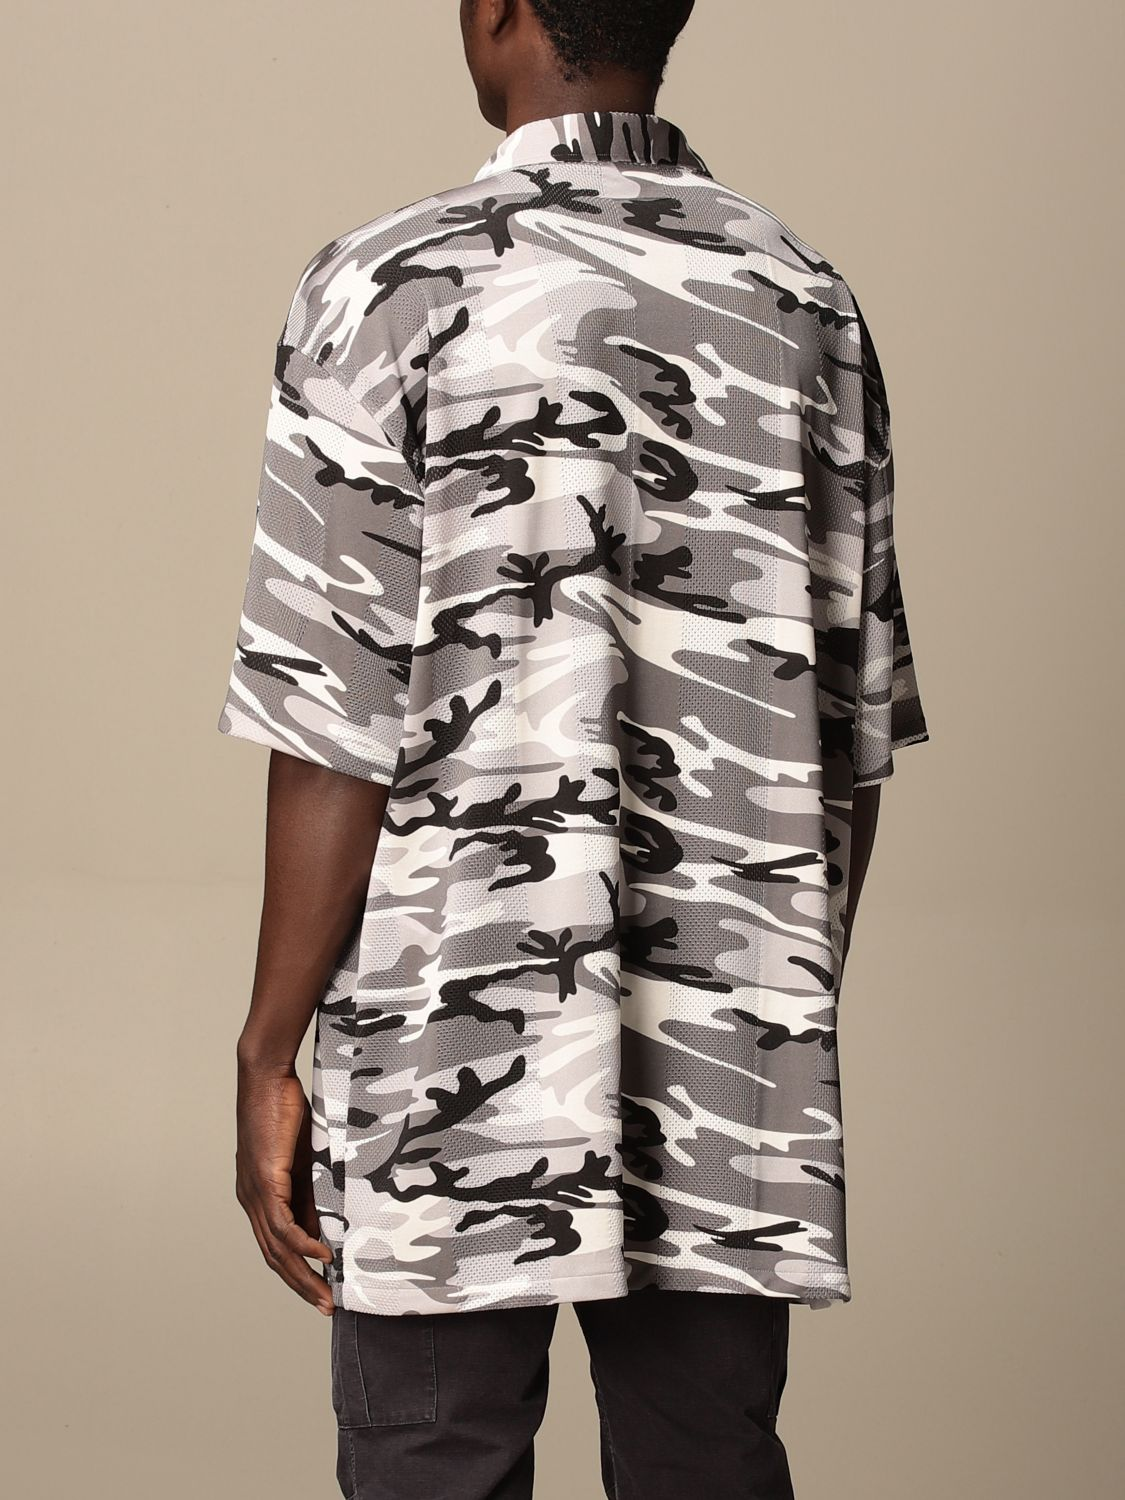 Shirt Balenciaga: Over Balenciaga shirt with camouflage pattern grey 3